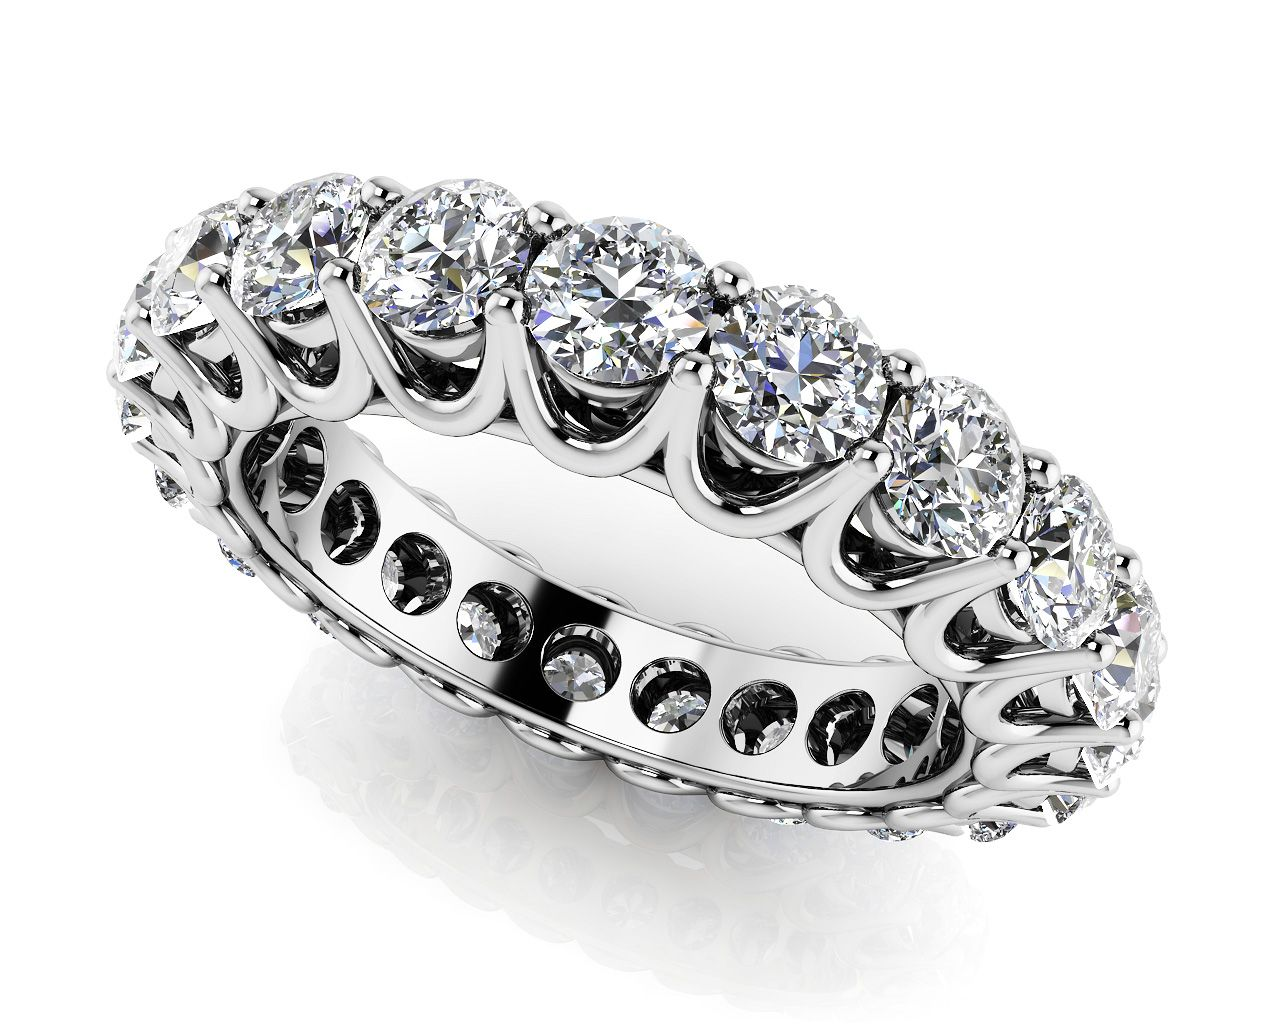 si pin prong bands forever ring shared diamond fg eternity unique